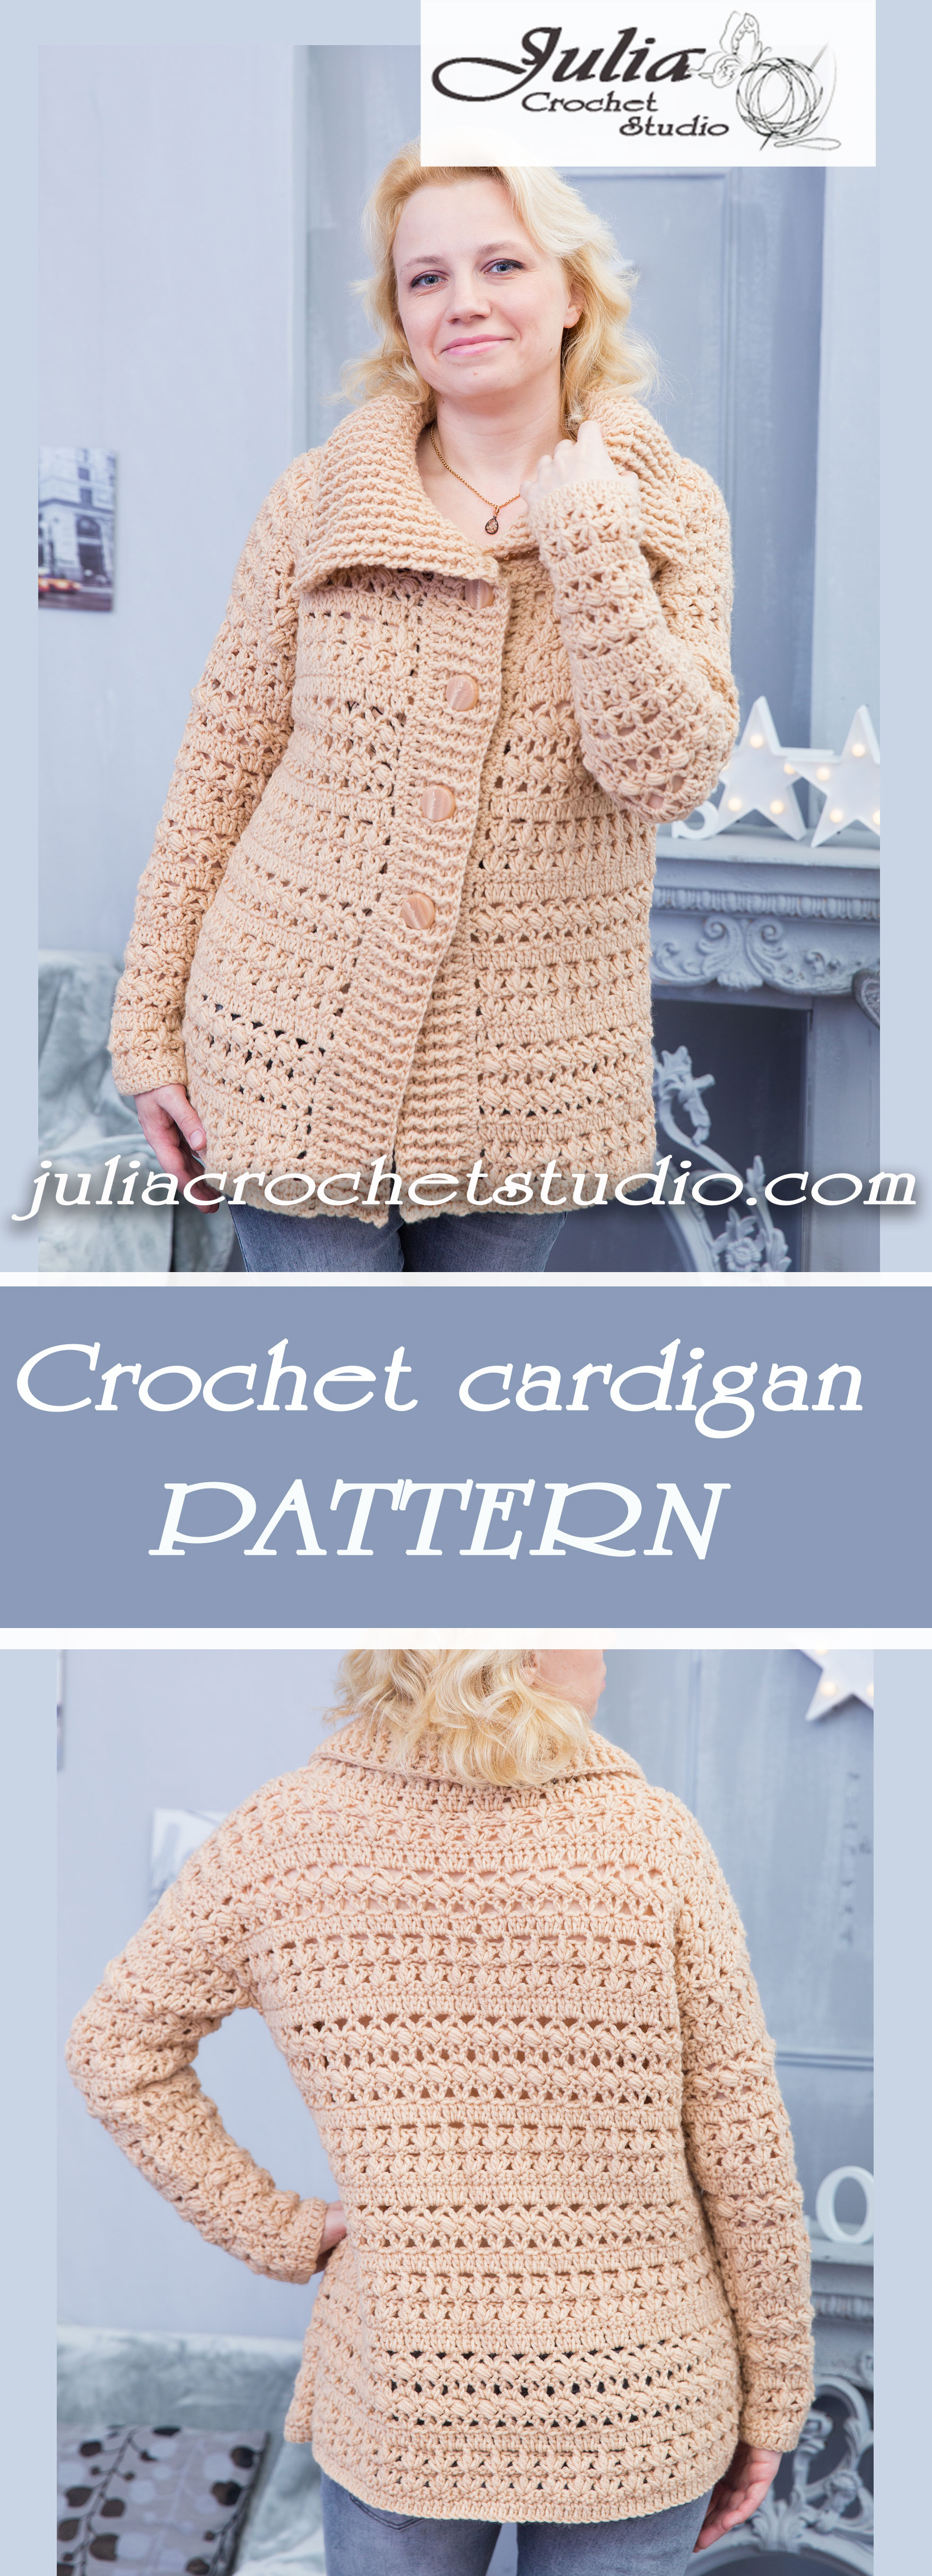 Casual crochet cardigan pattern